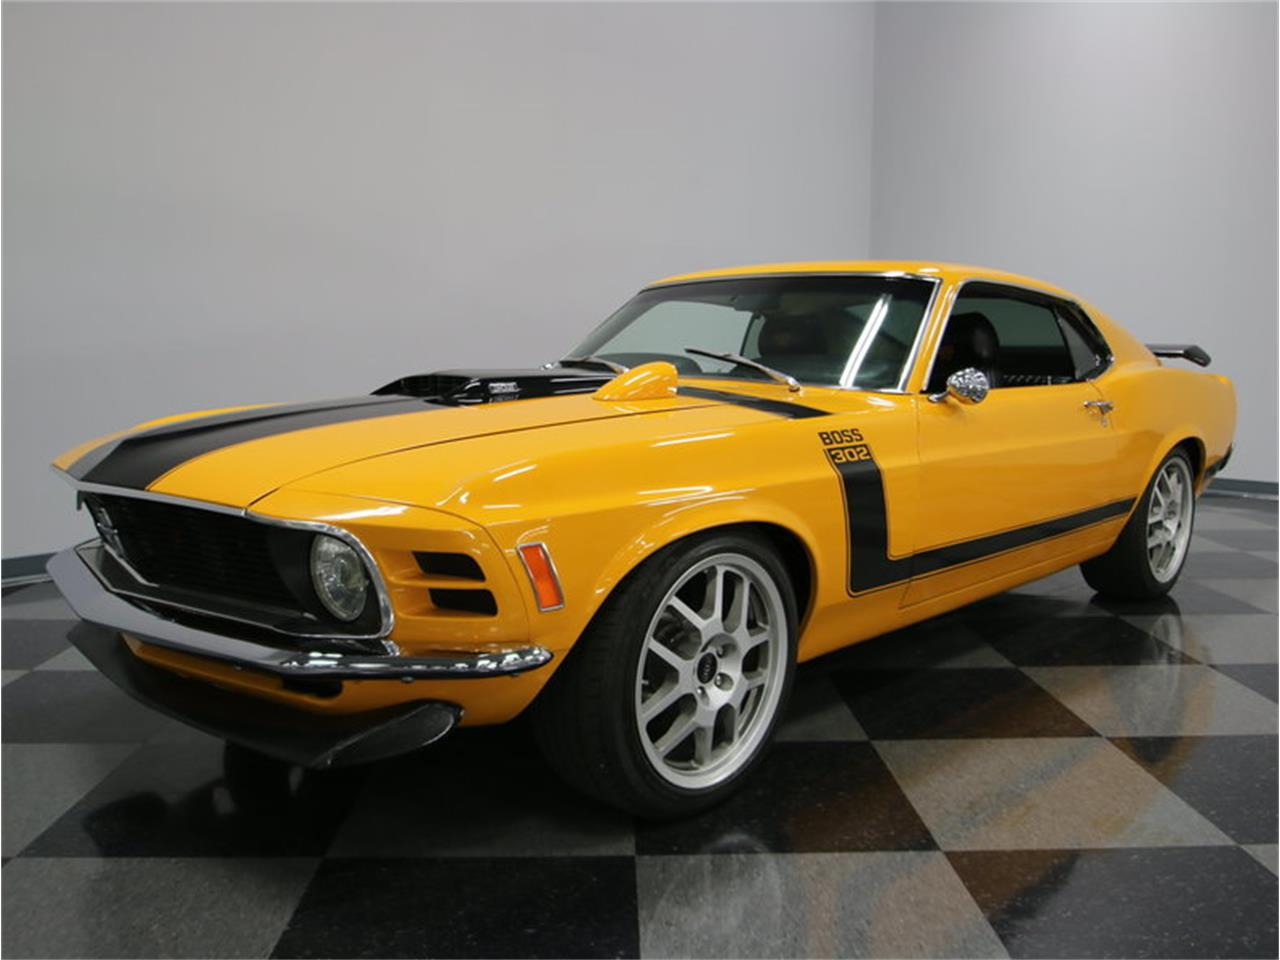 1970 ford mustang boss 302 pro touring for sale classiccars comlarge picture of 1970 mustang boss 302 pro touring jkbv